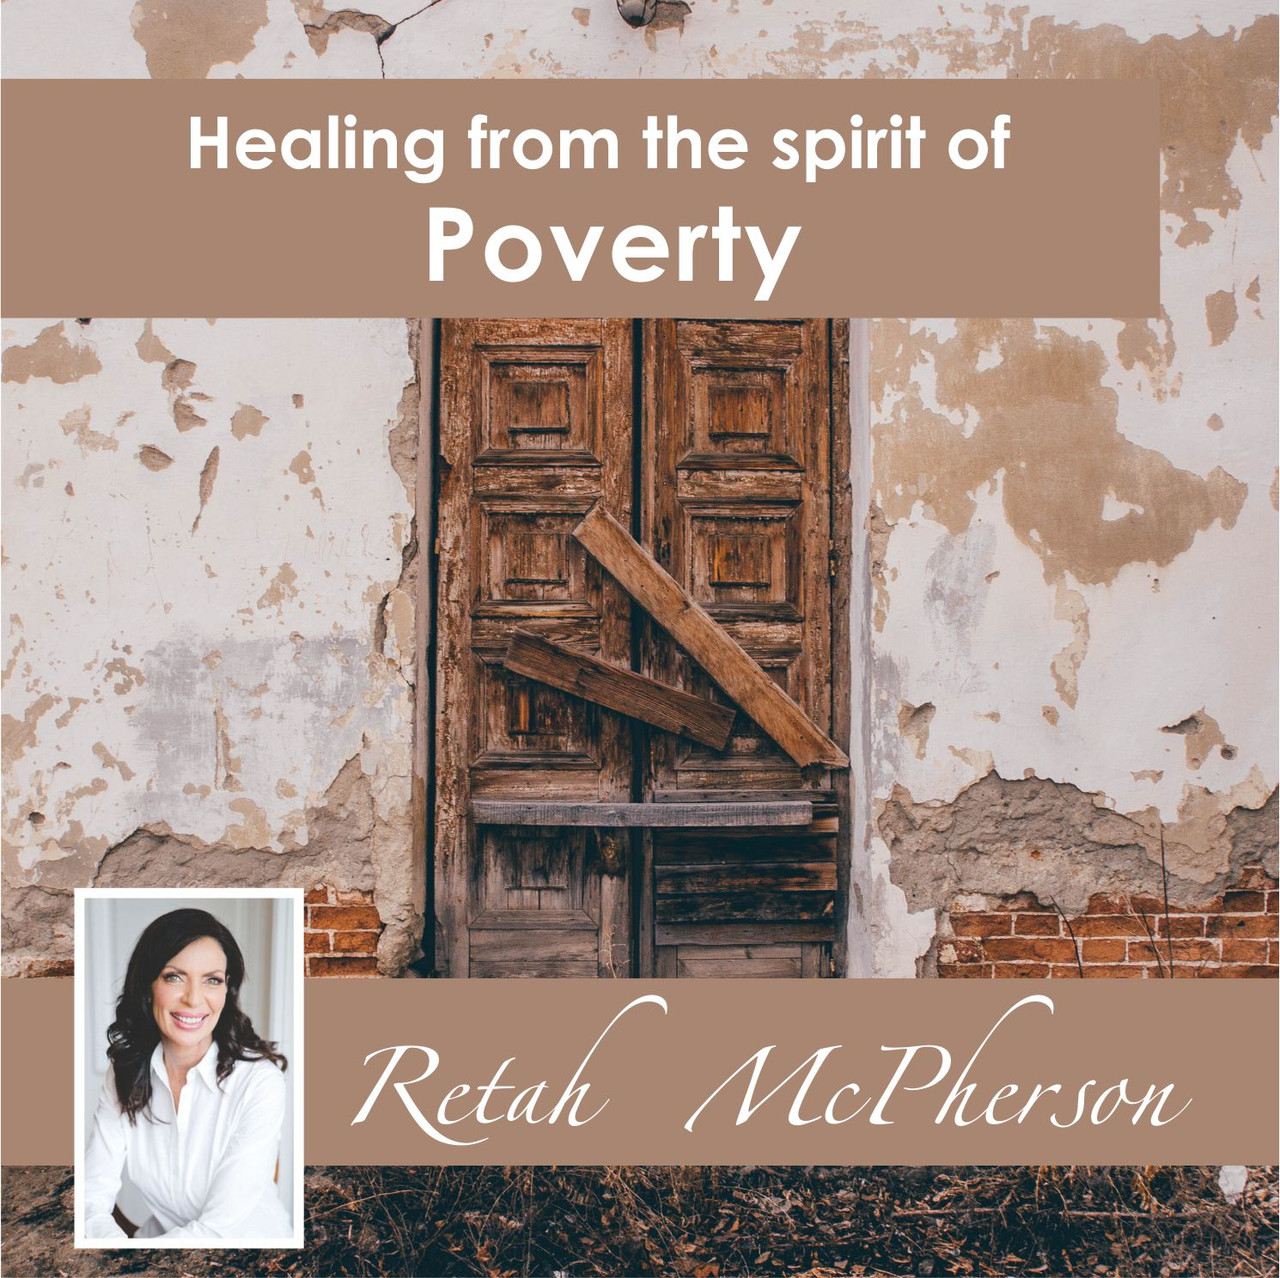 Healing from the spirit of Poverty